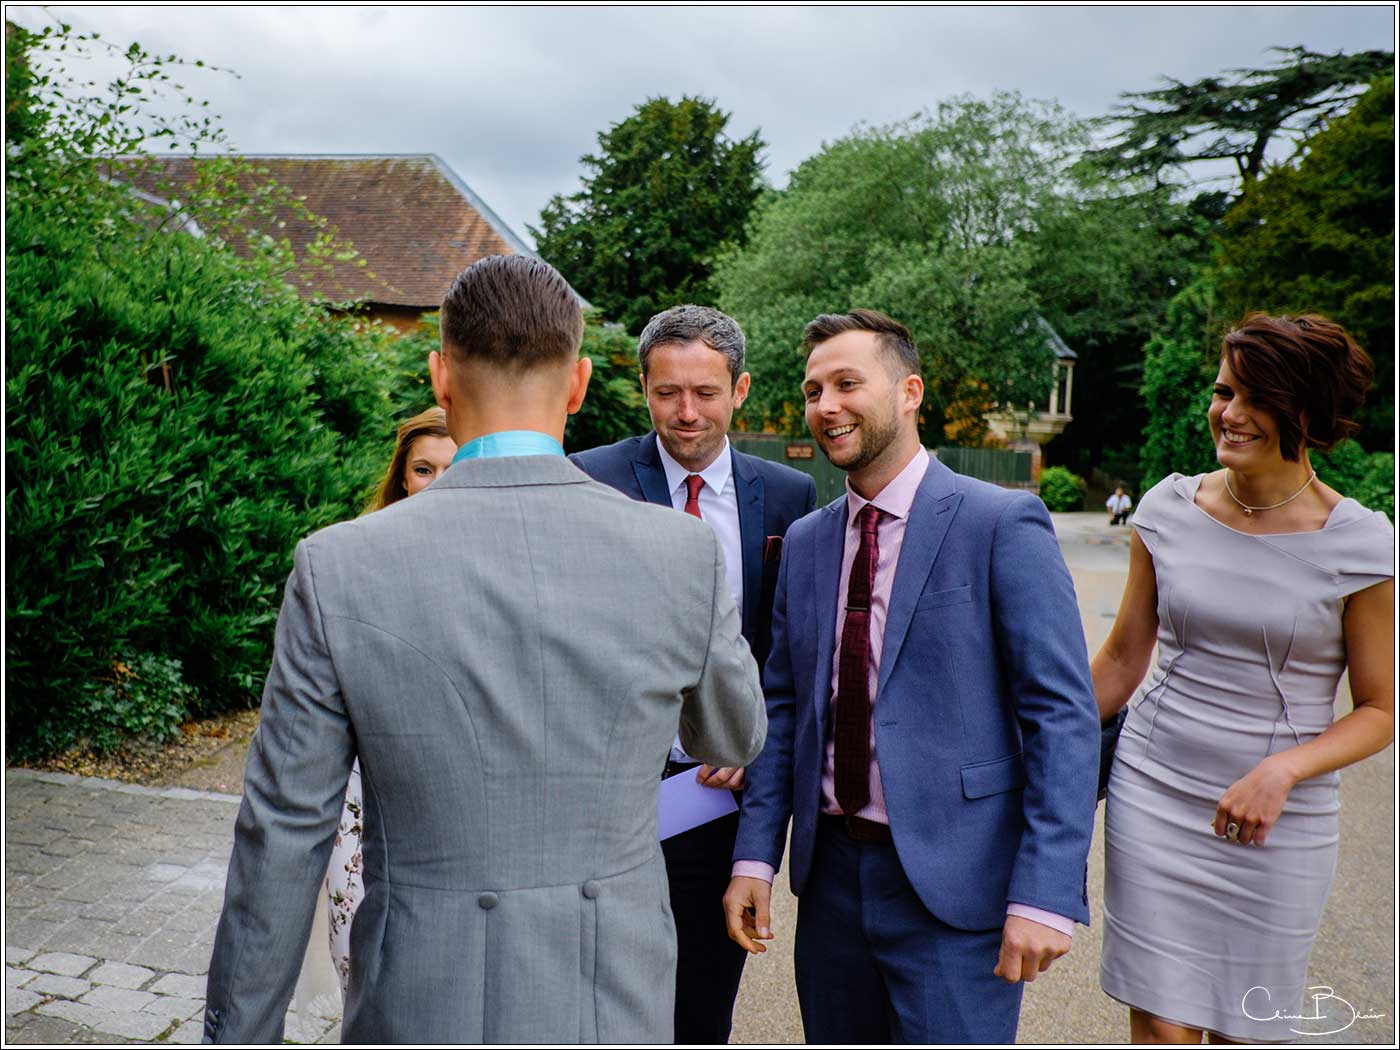 Coombe Abbey wedding photography showing guests arriving at the Abbeygate before the wedding